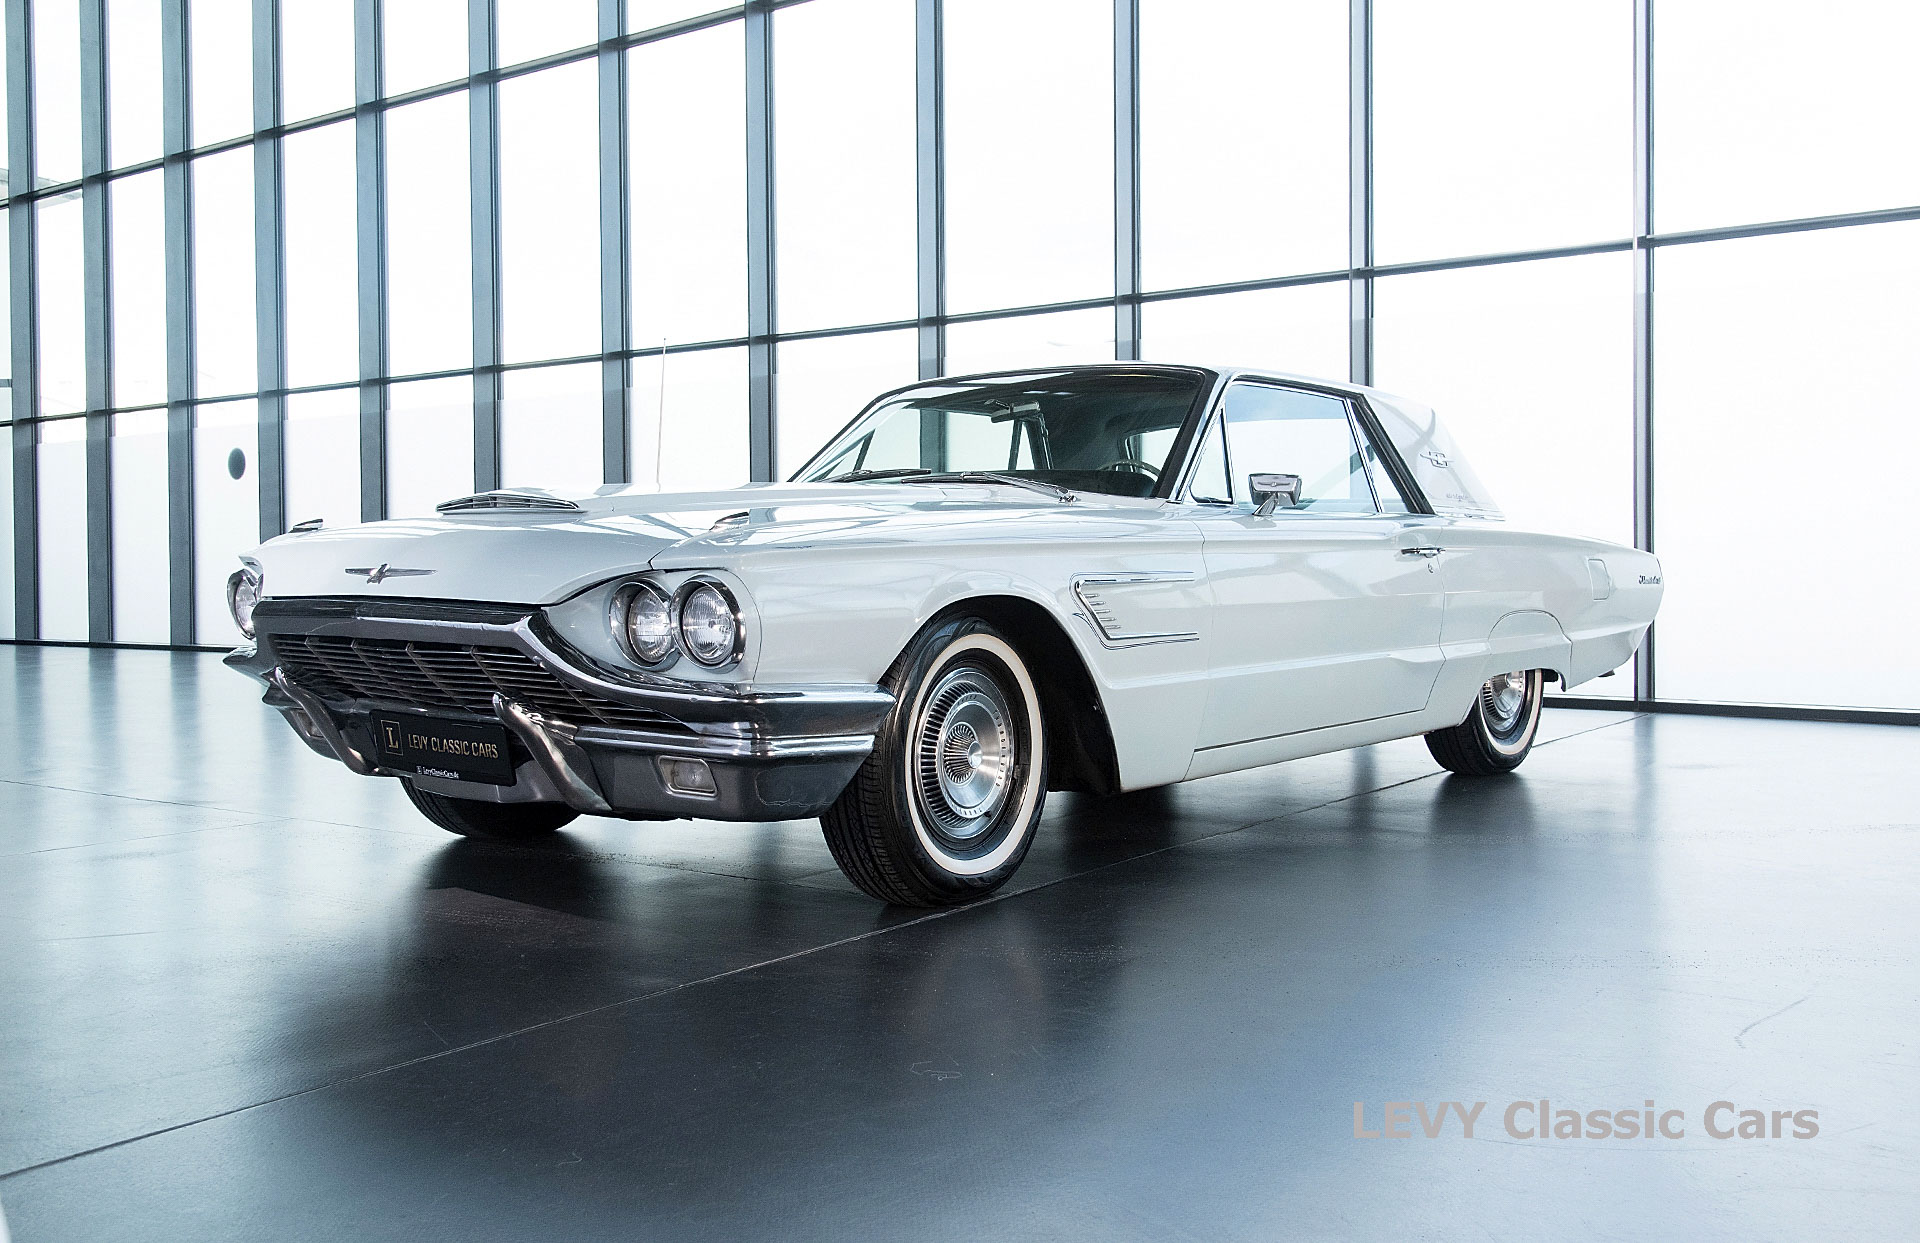 Ford Thunderbird CC70857 066_1